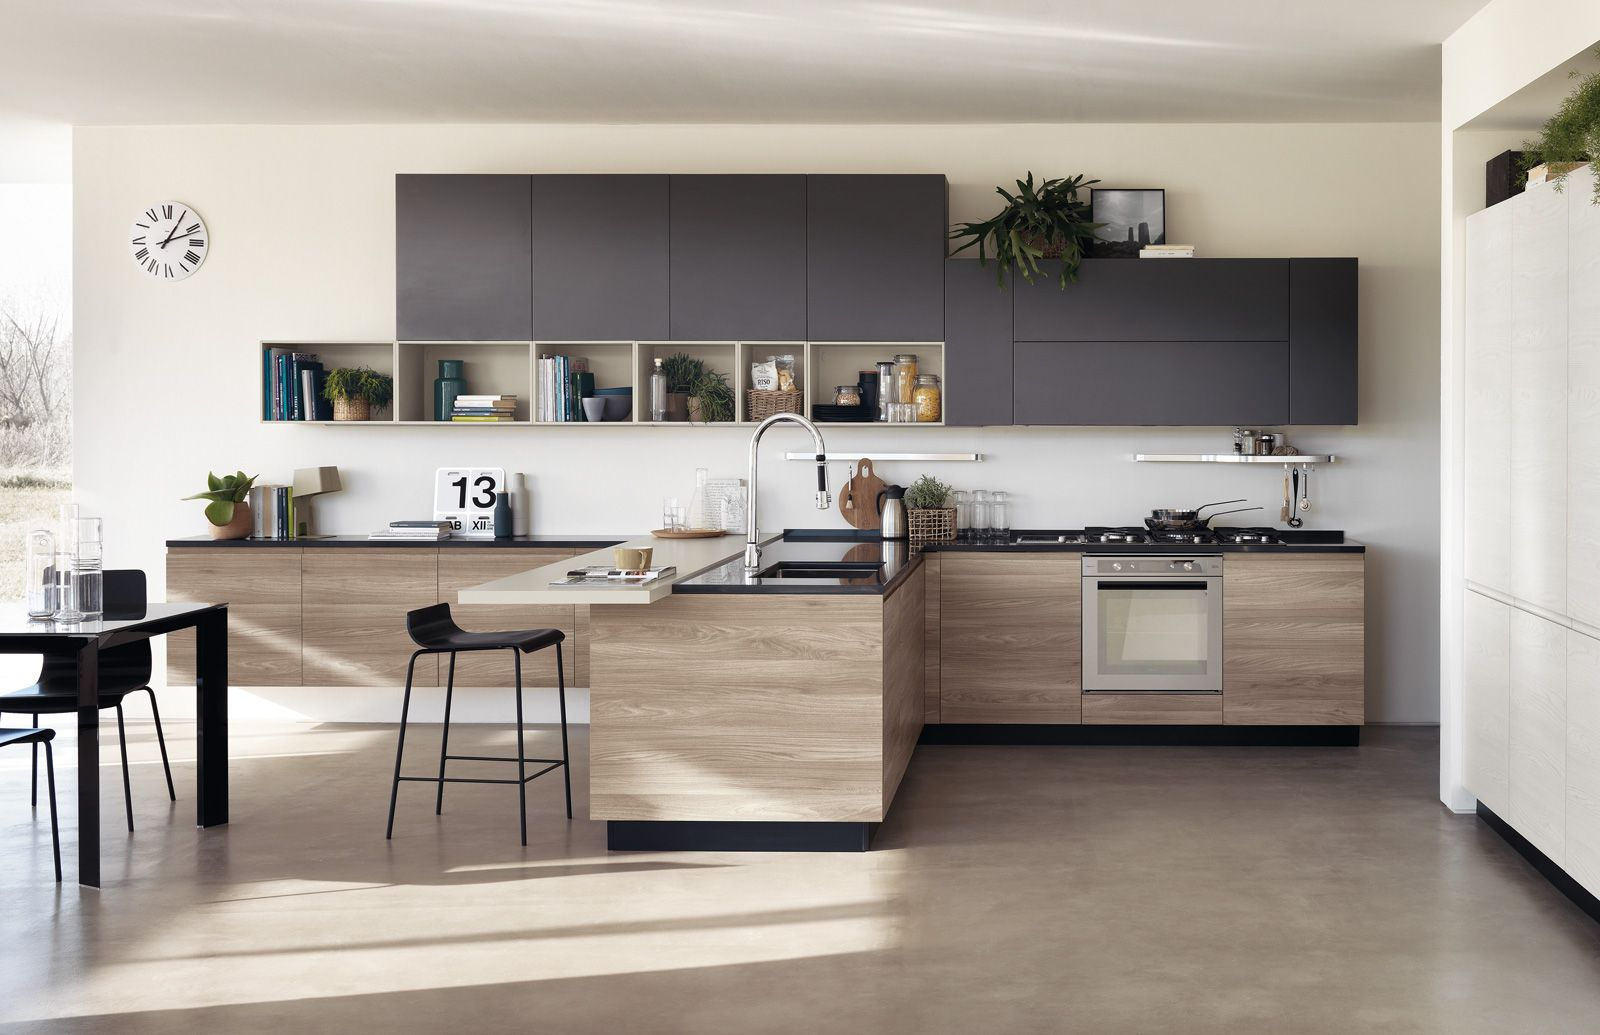 Cucine bicolore: l\'alternanza cromatica fa tendenza | Kitchen ...